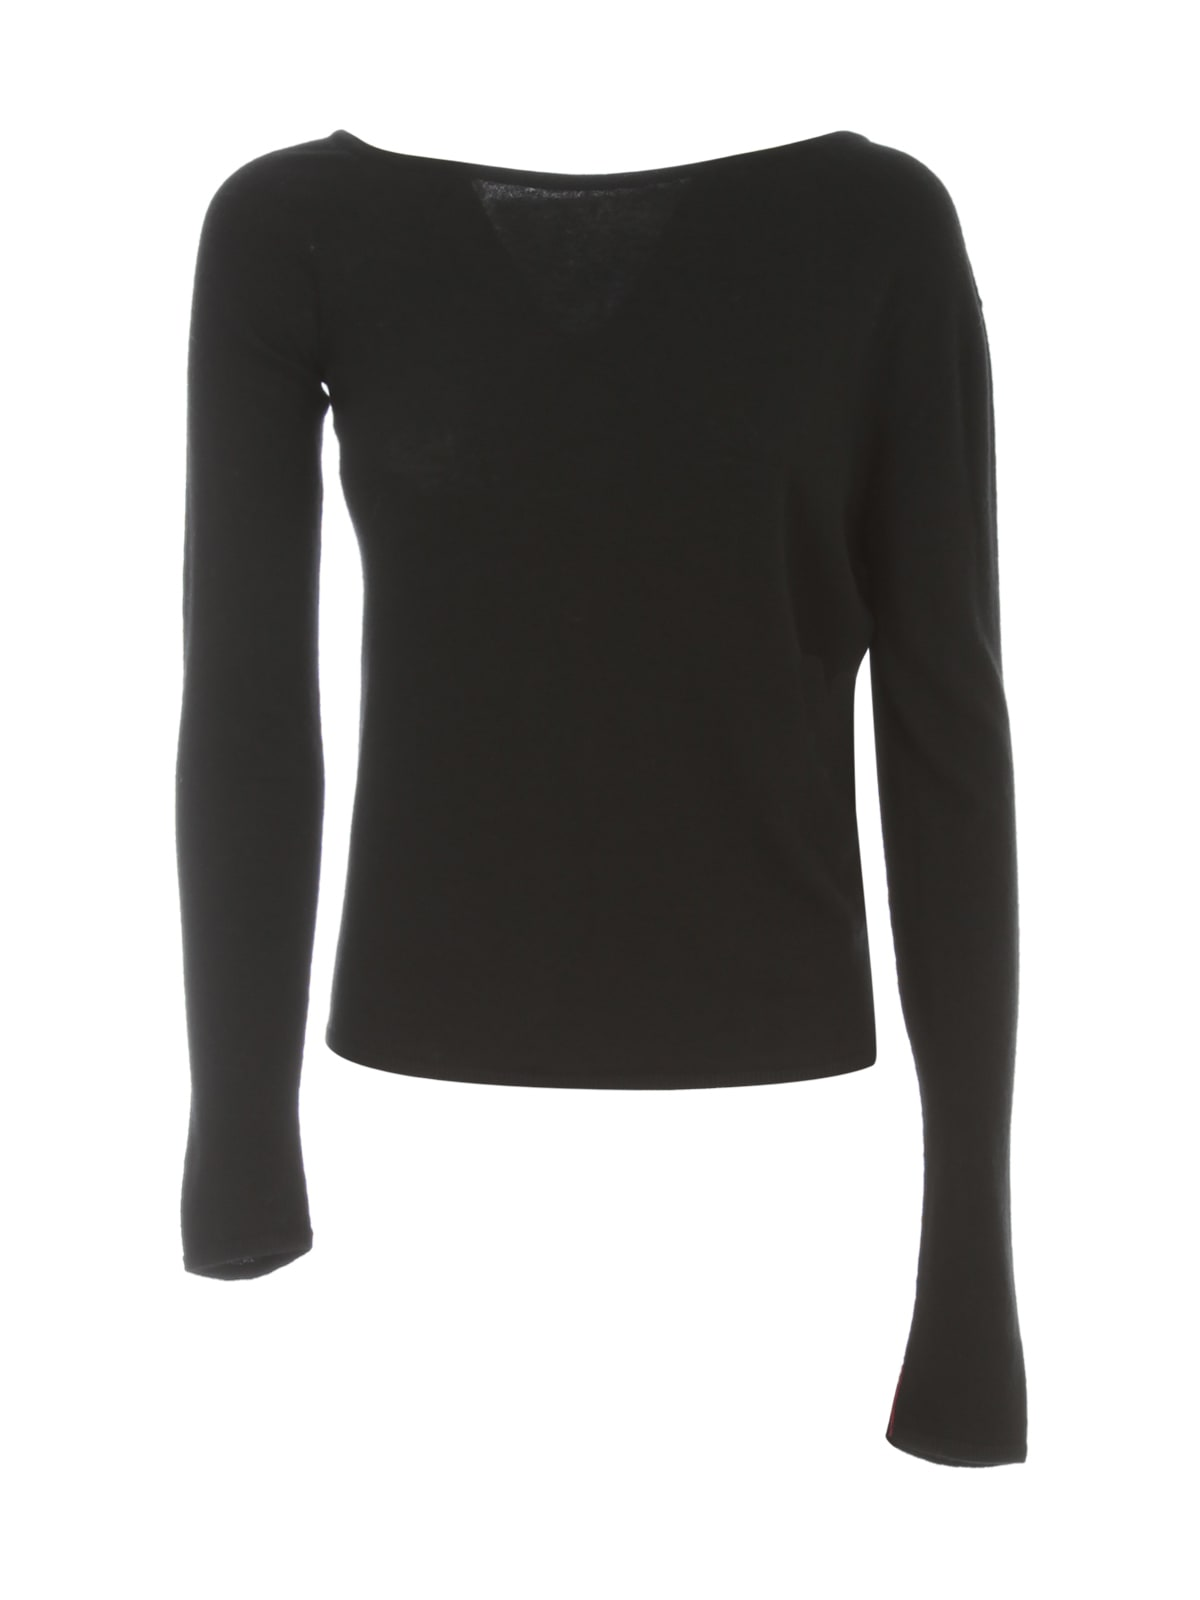 Liviana Conti Single Houlder Sweater